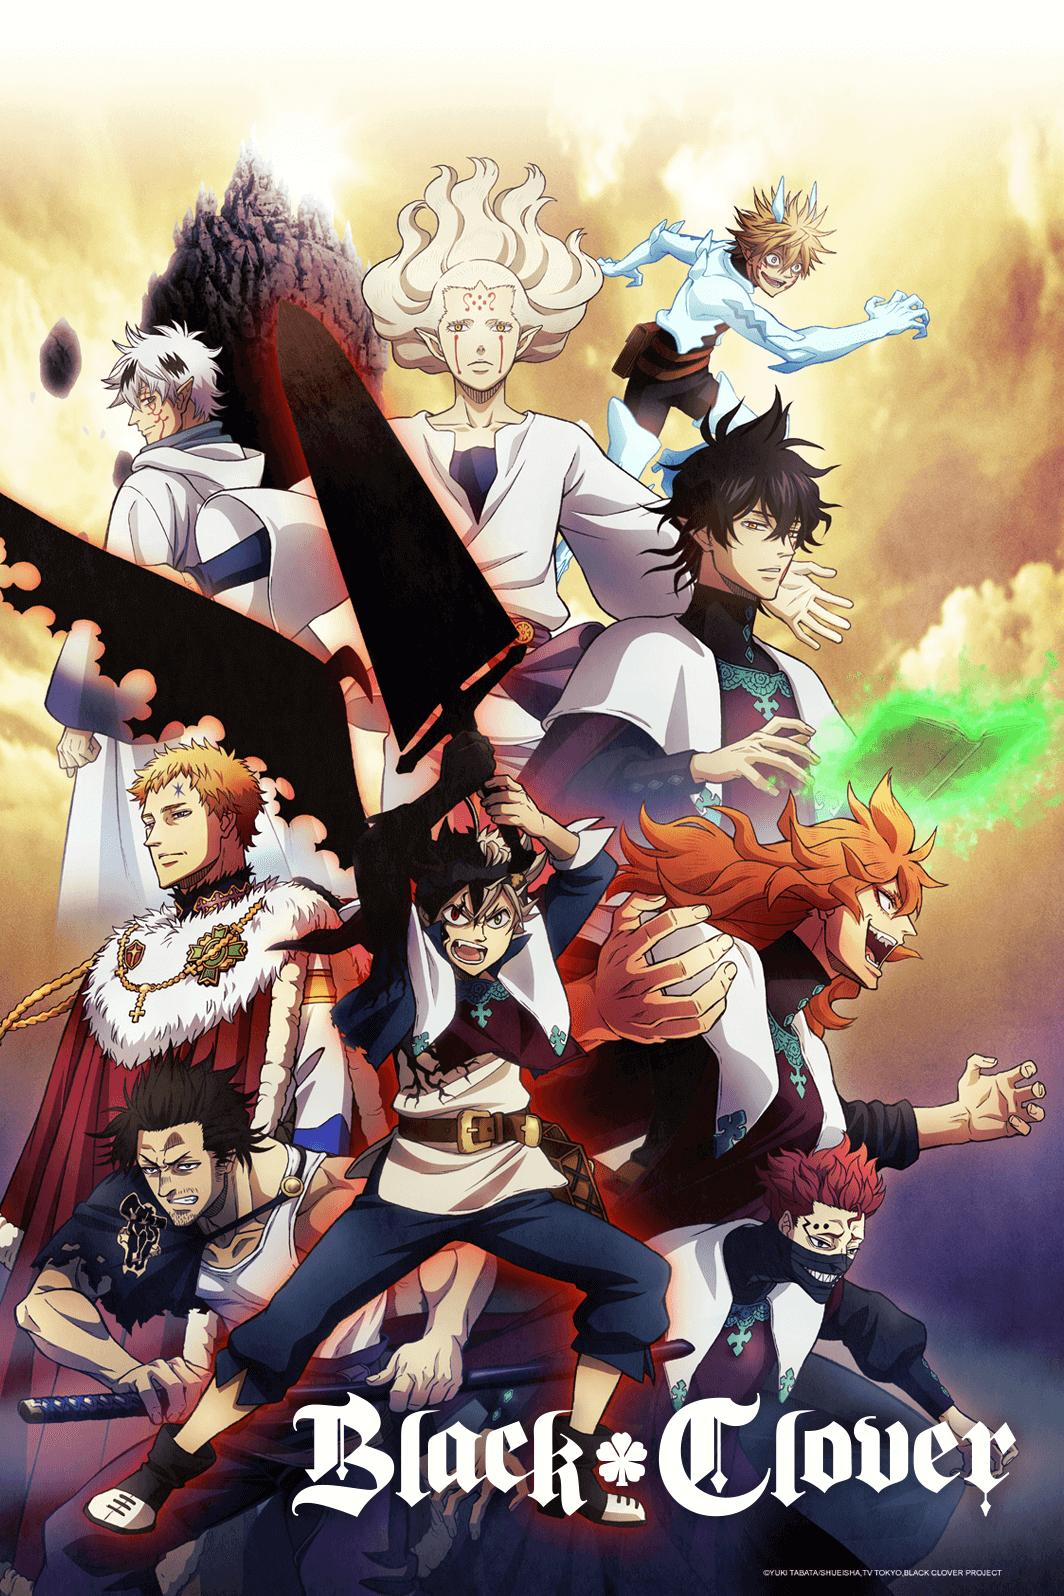 Tons of awesome black clover live wallpapers to download for free. Black Clover Live Wallpaper - Bakaninime